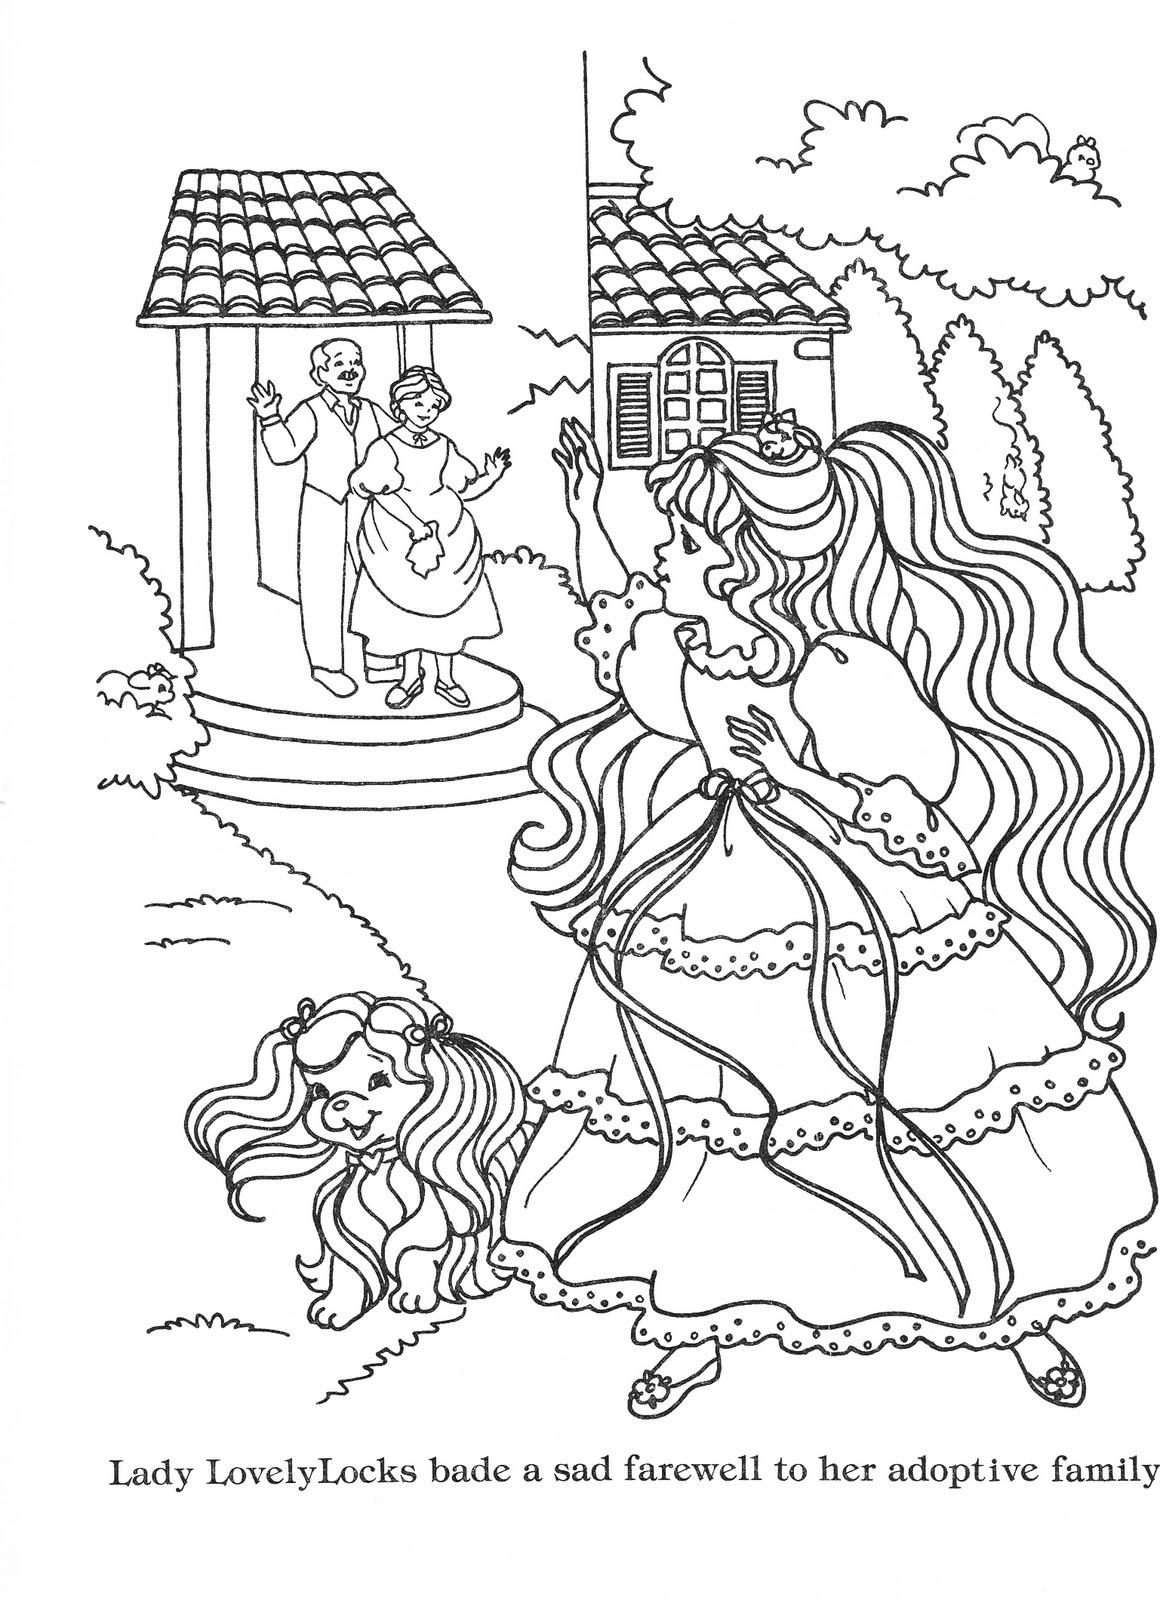 lady lovely locks coloring pages lady lovely locks coloring book lady lovely locks the